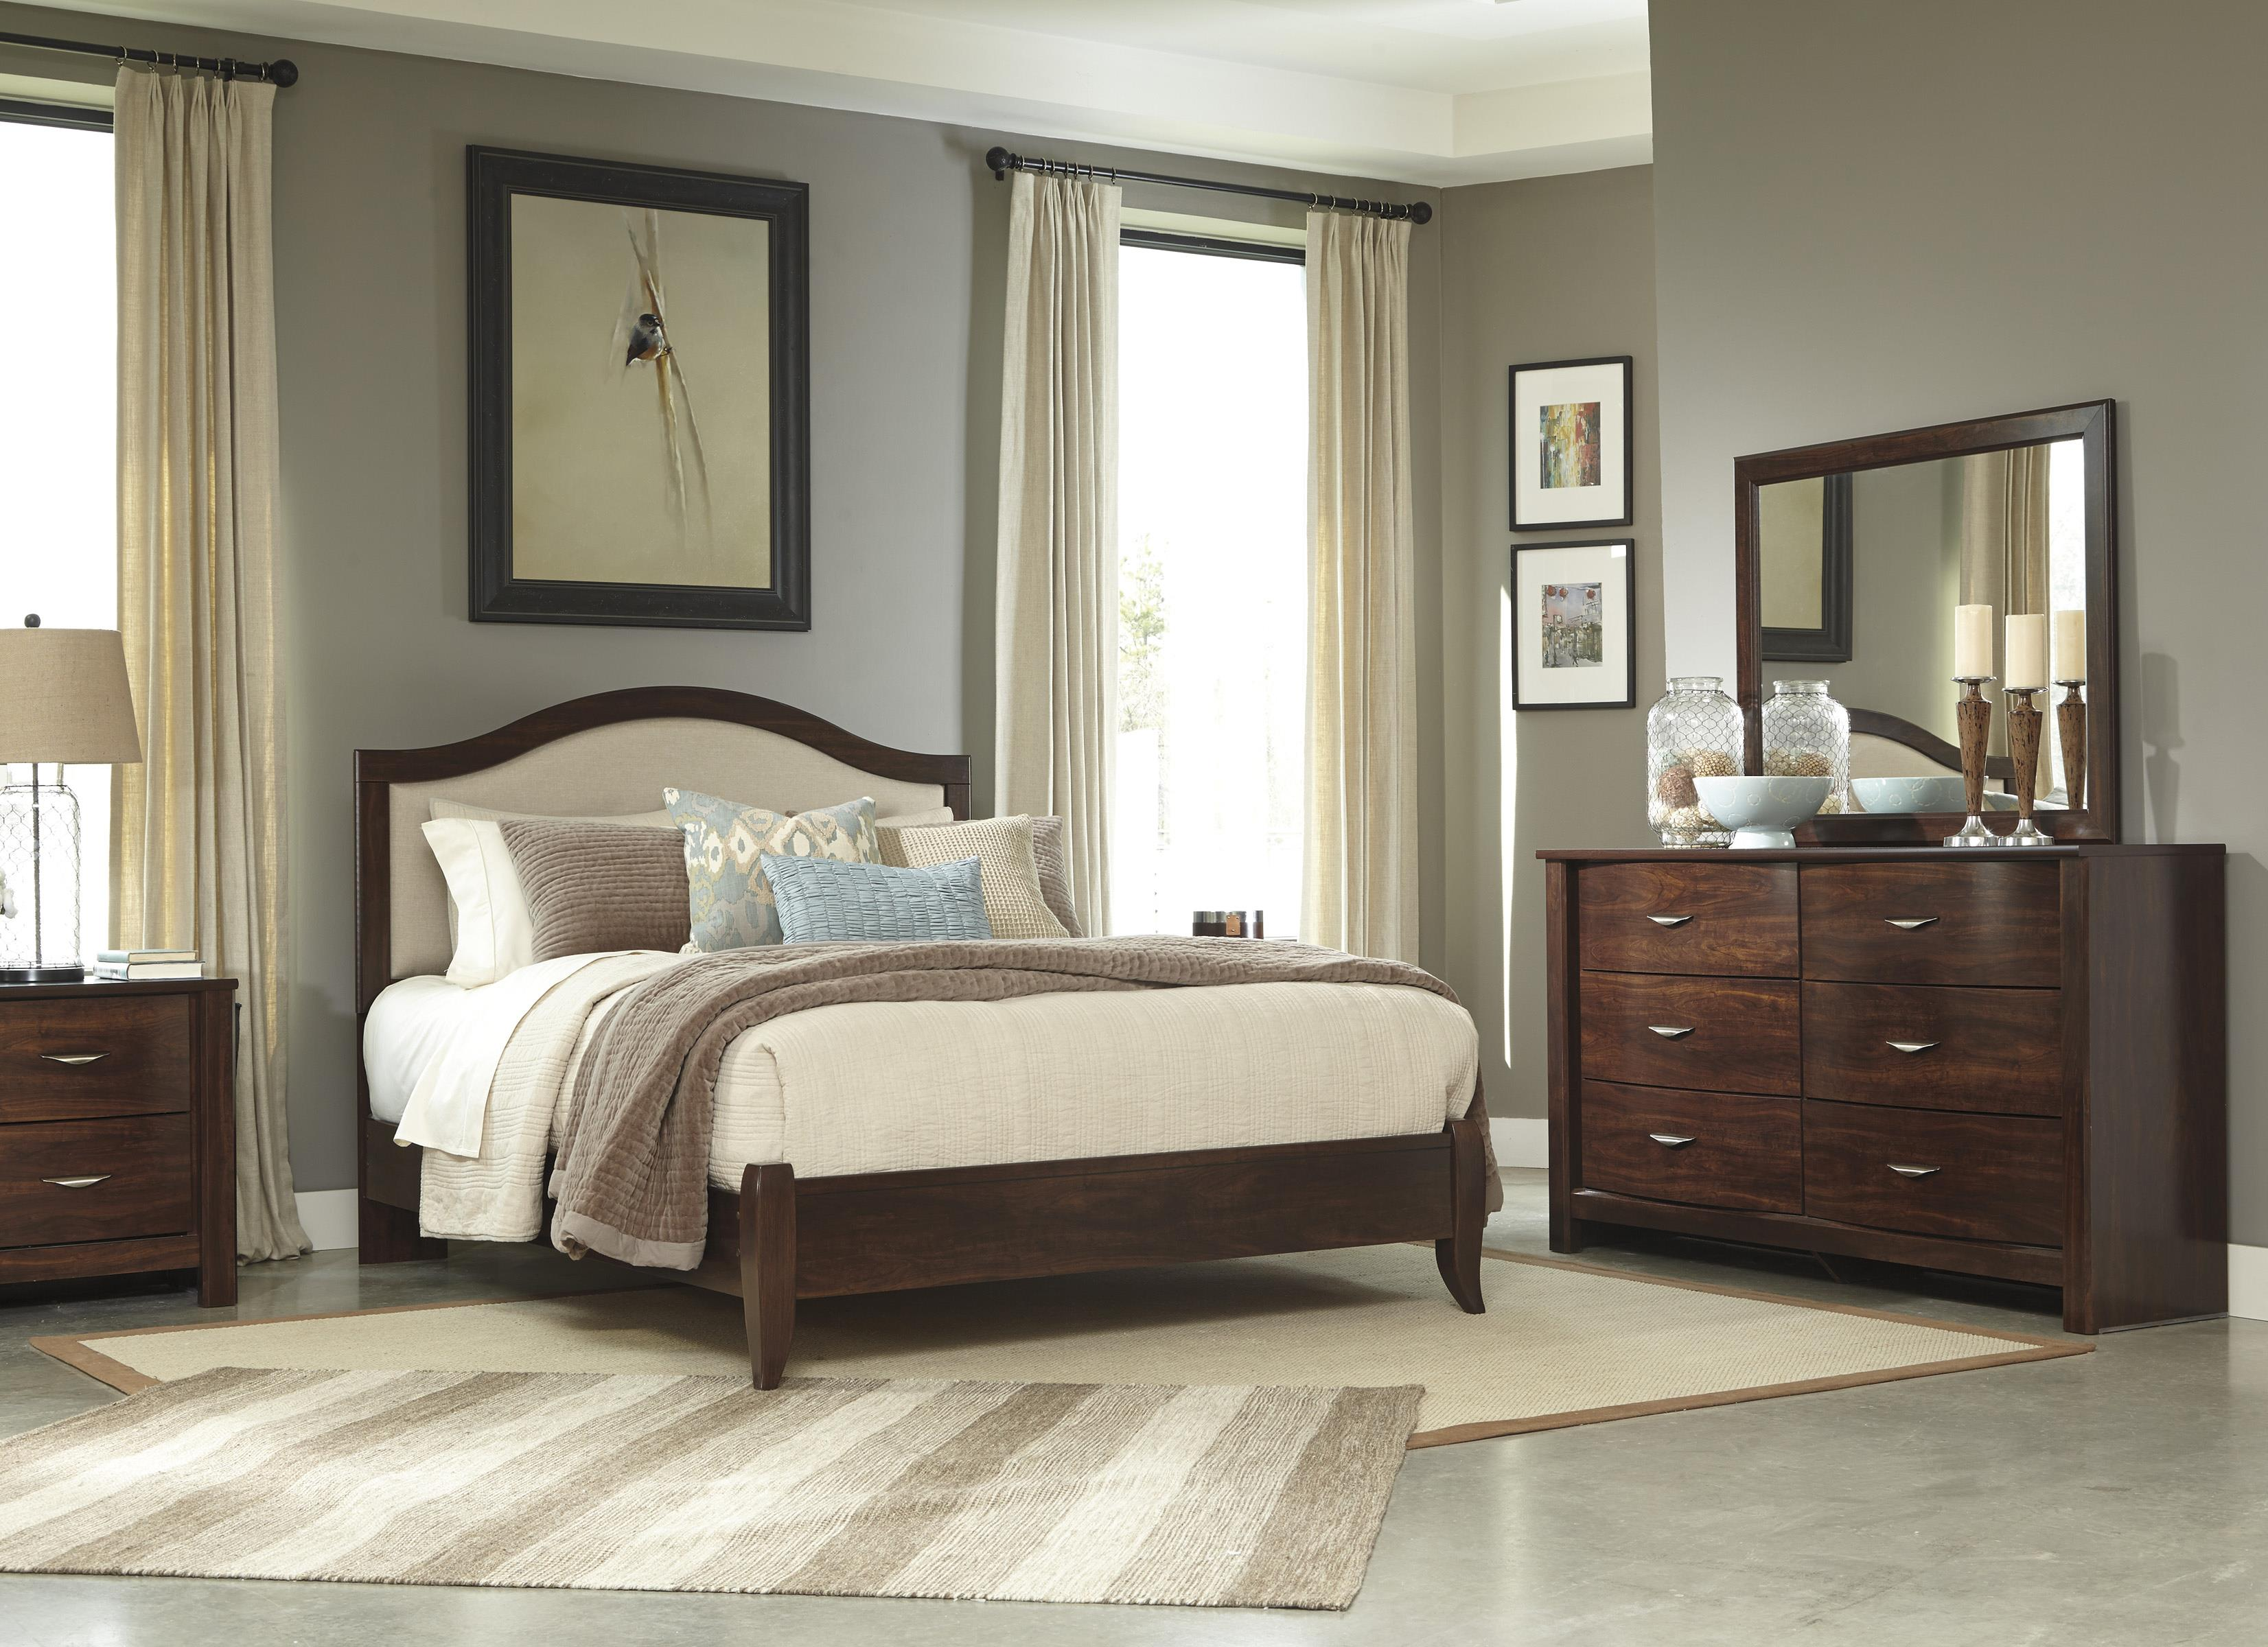 Signature Design by Ashley Corraya Queen Bedroom Group - Item Number: B428 Q Bedroom Group 2